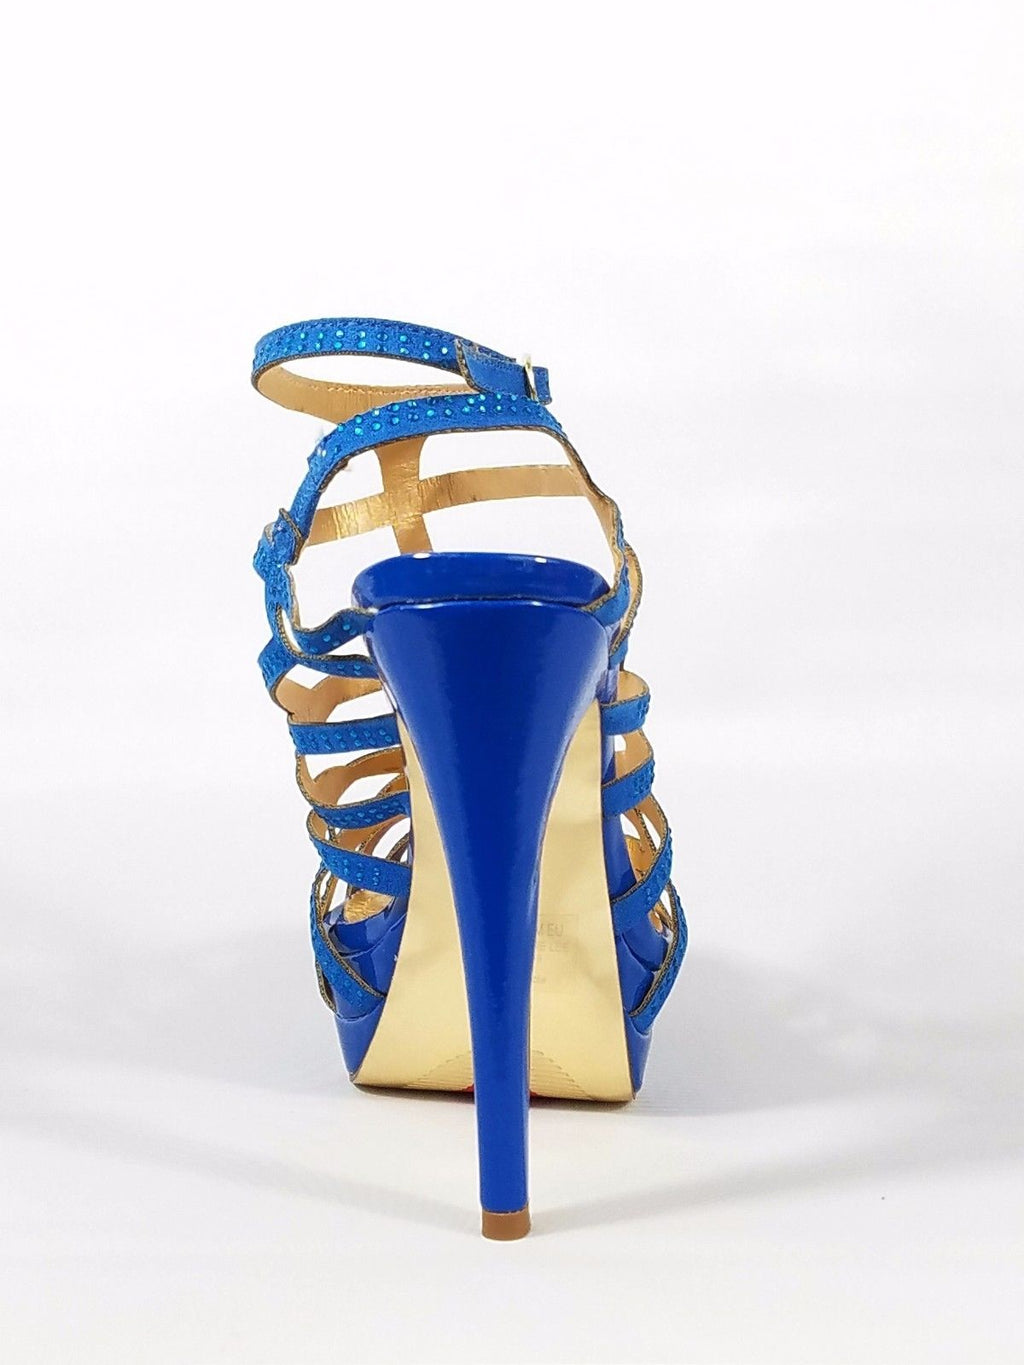 Luichiny Slingback Cut Out Rhinestone Strap Platform Sandal Shoe Blue